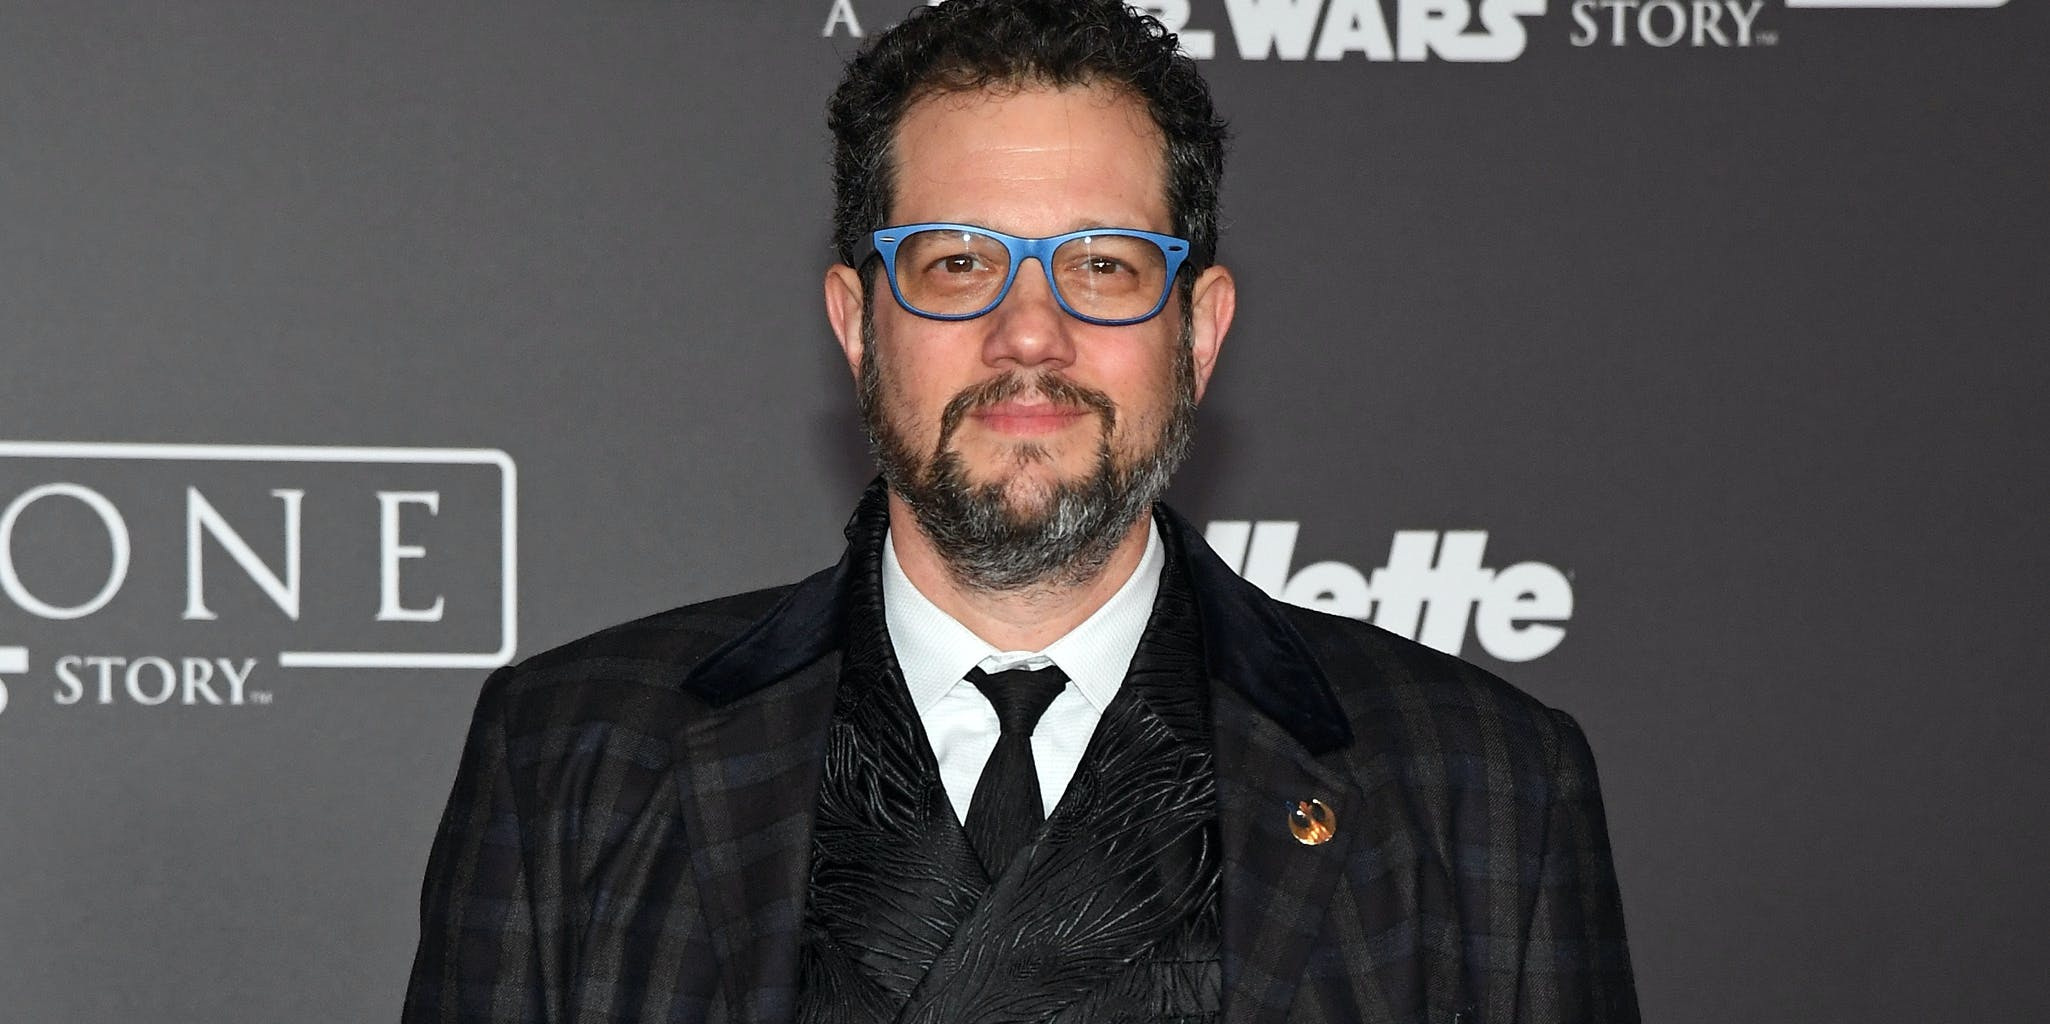 HOLLYWOOD, CA - DECEMBER 10:  Composer Michael Giacchino attends the premiere of Walt Disney Pictures and Lucasfilm's 'Rogue One: A Star Wars Story' at the Pantages Theatre on December 10, 2016 in Hollywood, California.  (Photo by Ethan Miller/Getty Images)